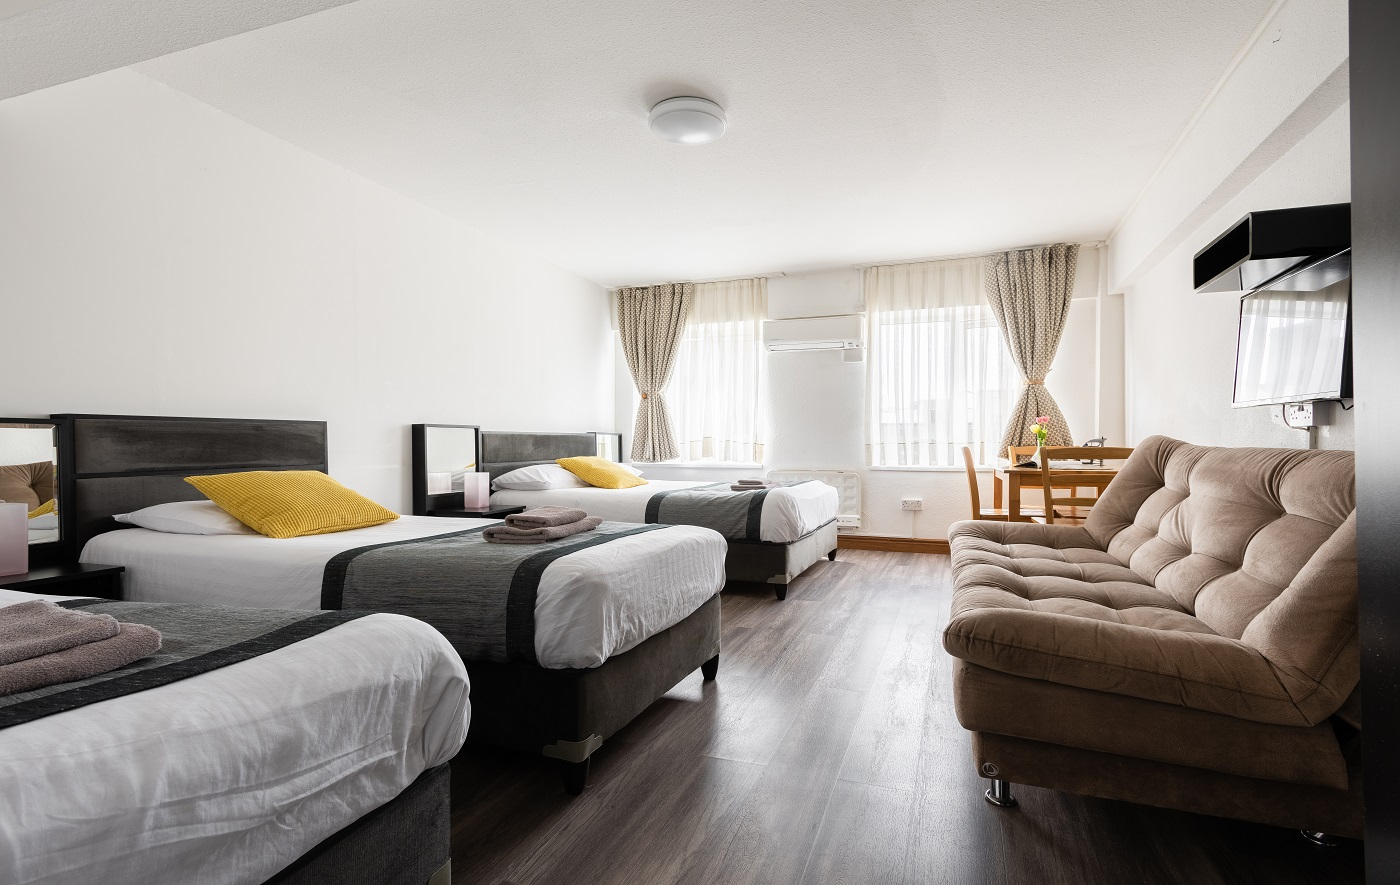 Central-Hoxton-Shoreditch-Aparthotel-East-London---Cool-Serviced-Apartments-London-All-Bills-Incl,-Wifi,-24h-Reception,-Aircon,-Lift-Access,-Breakfast---Urban-Stay-2